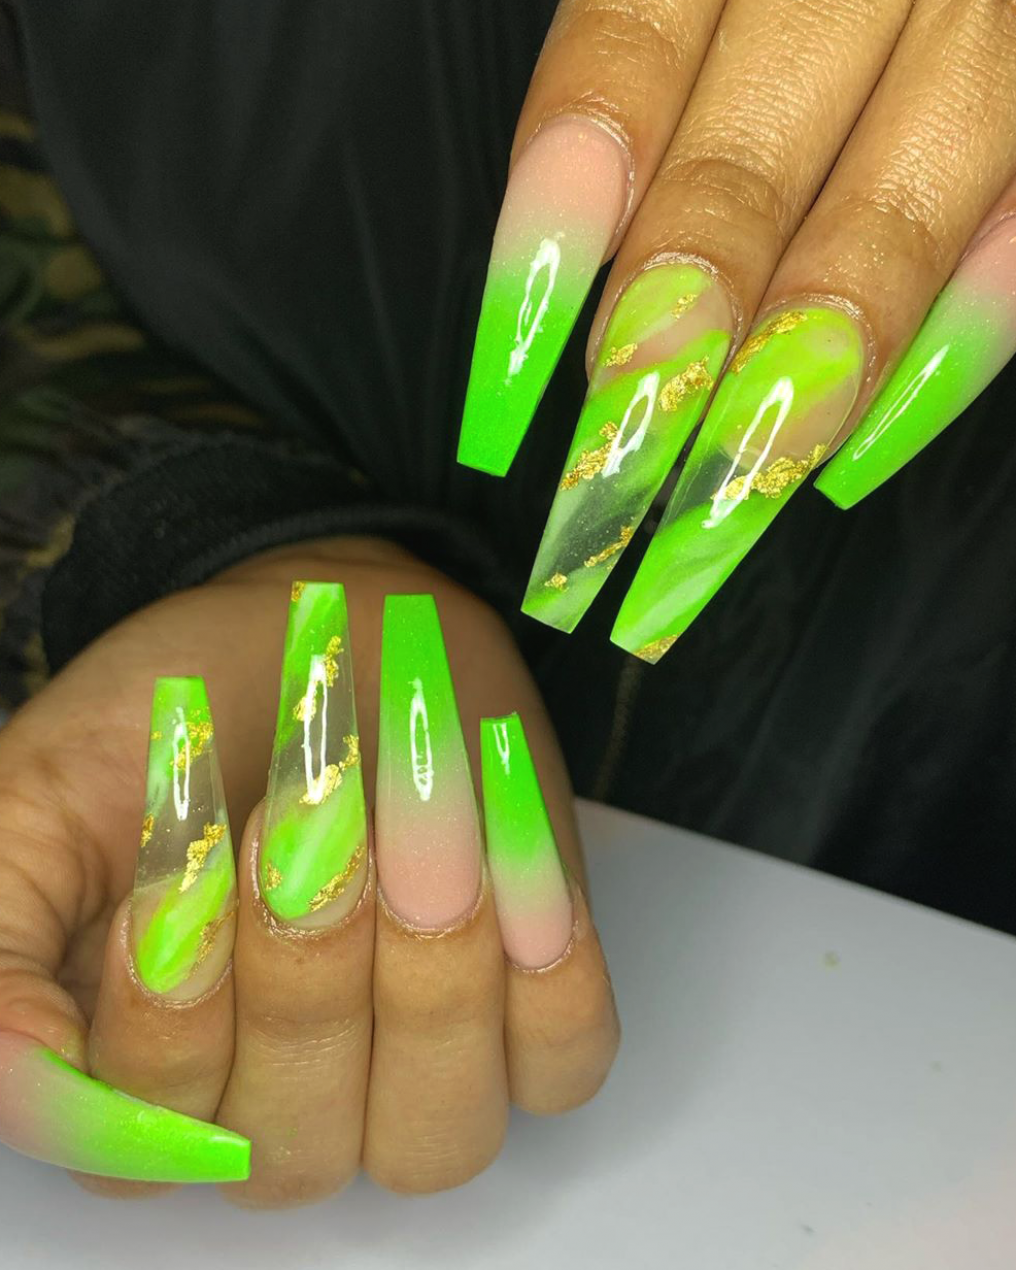 Lime Green Ombre Coffin Nails With Two Accent Lime Green Marble Nails Adorned With Gold Foil Cheetahac In 2020 Green Acrylic Nails Neon Green Nails Green Nail Designs